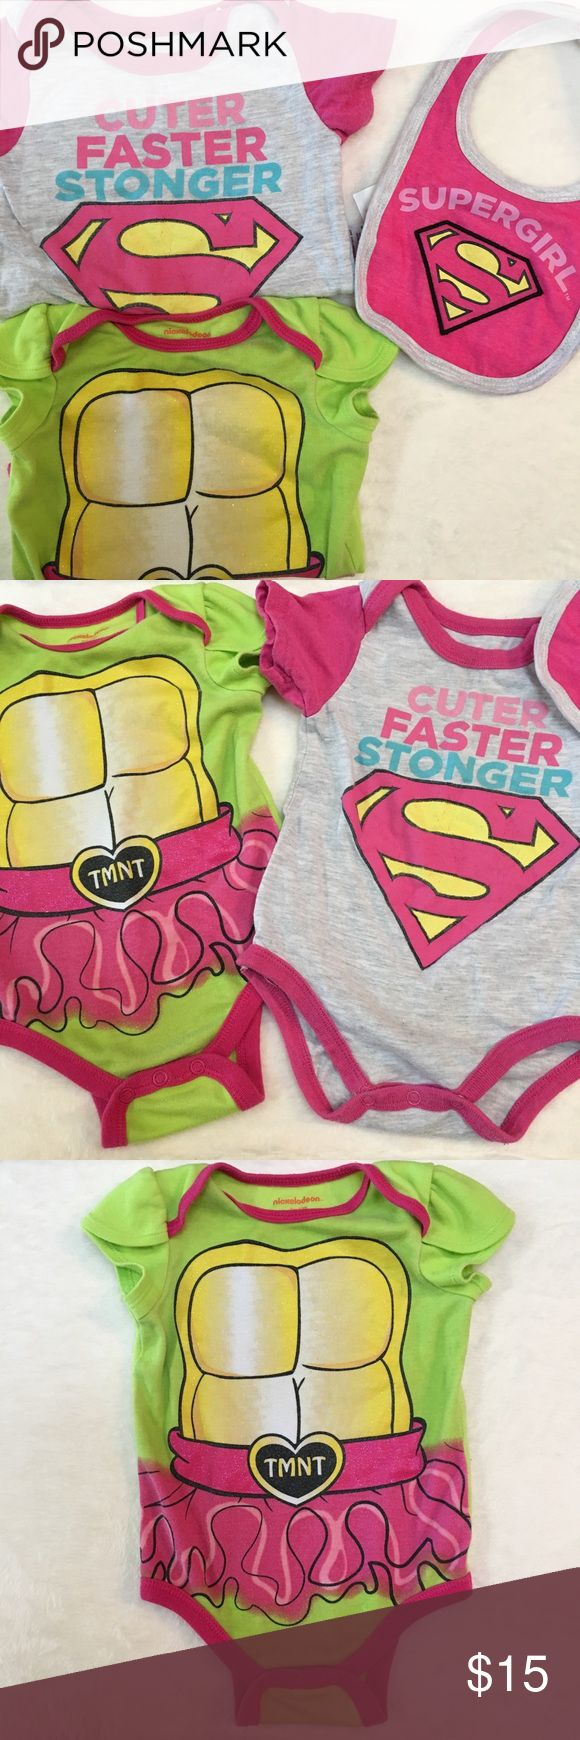 3Pcs 2 Onesies & 1 Brand New Bib Both onesies are gently used, some peeling on the supergirl logo, the supergirl also seems to be coming slightly loose on the hip, I am sure a quick needle and thread can fix it, please see pictures. Tmnt has normal wear, no damage. The bib was never used. One Pieces Bodysuits